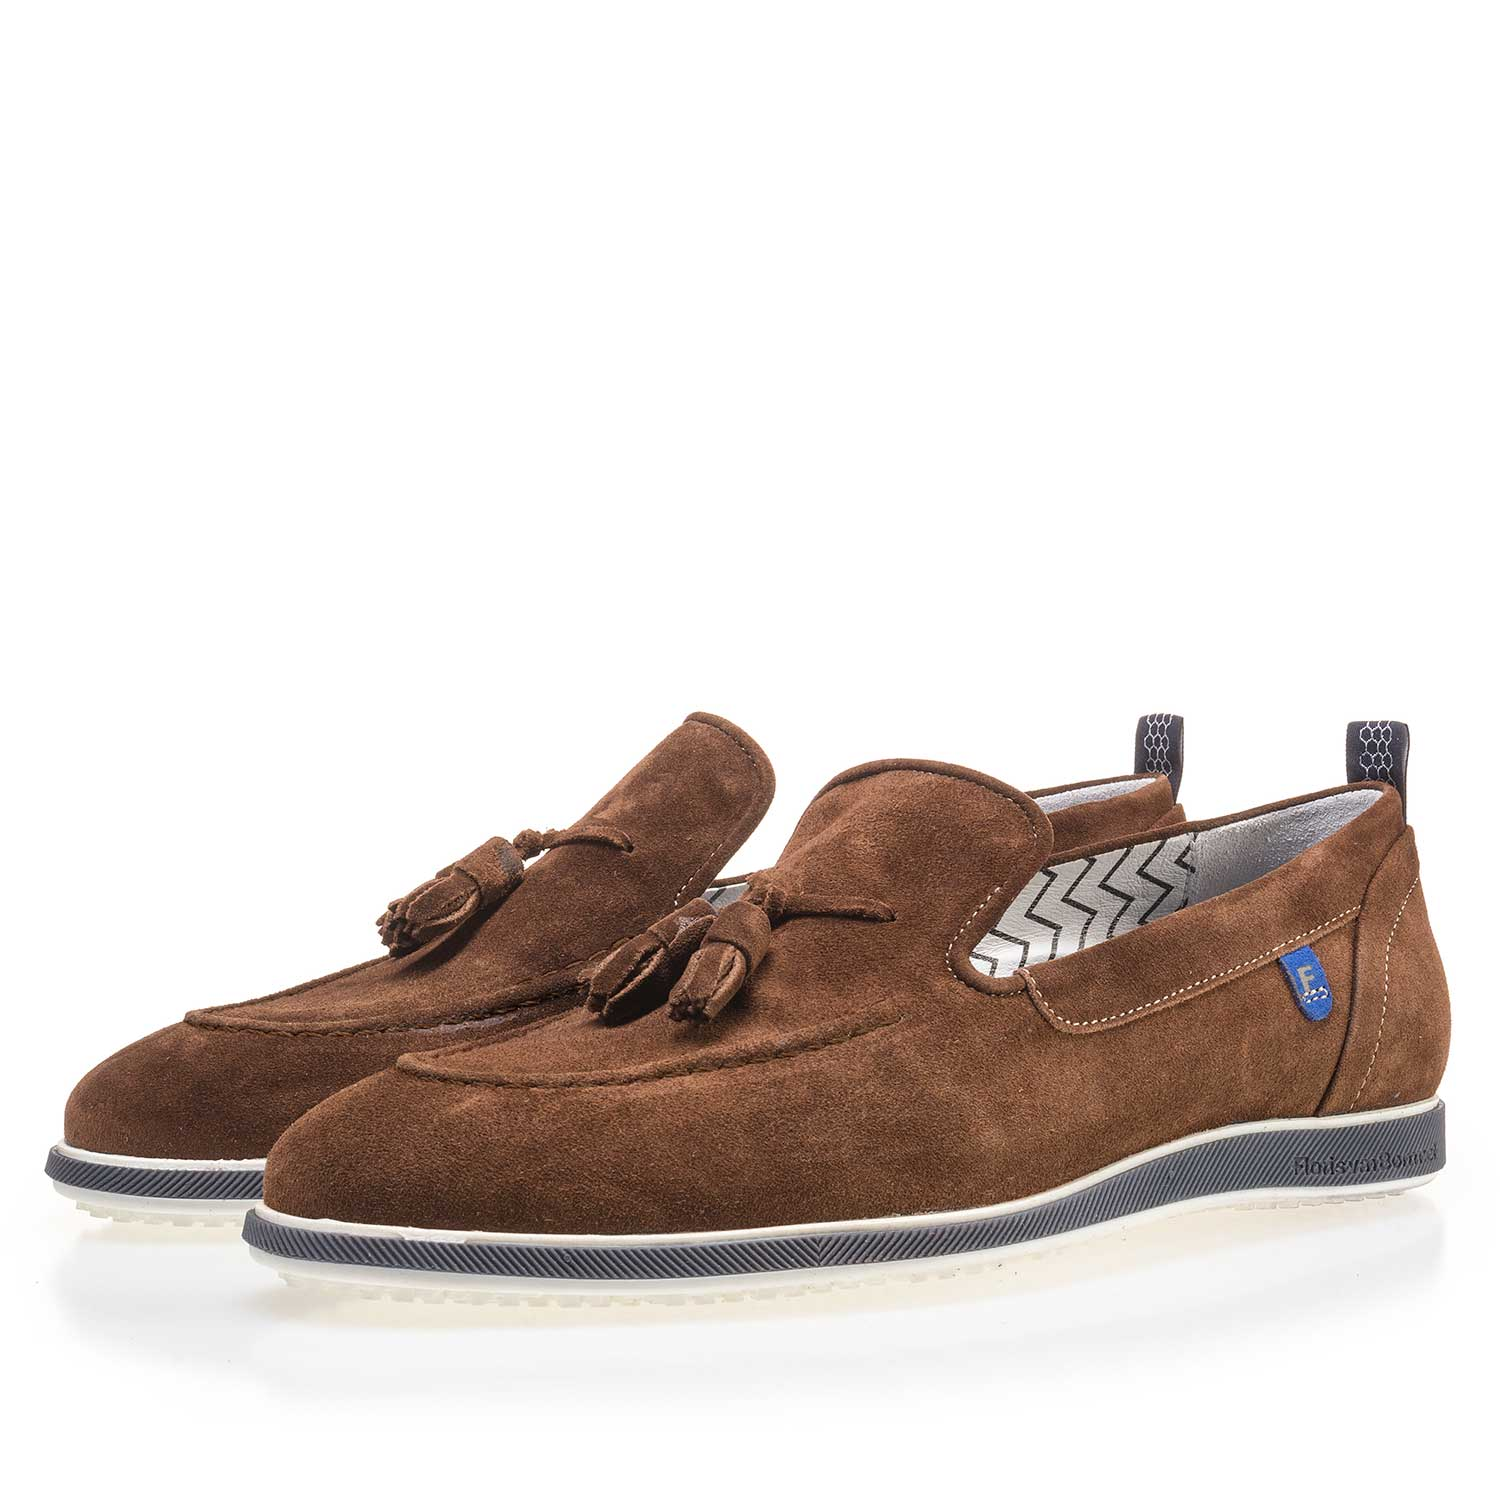 11127/02 - Brown suede leather tassel loafer